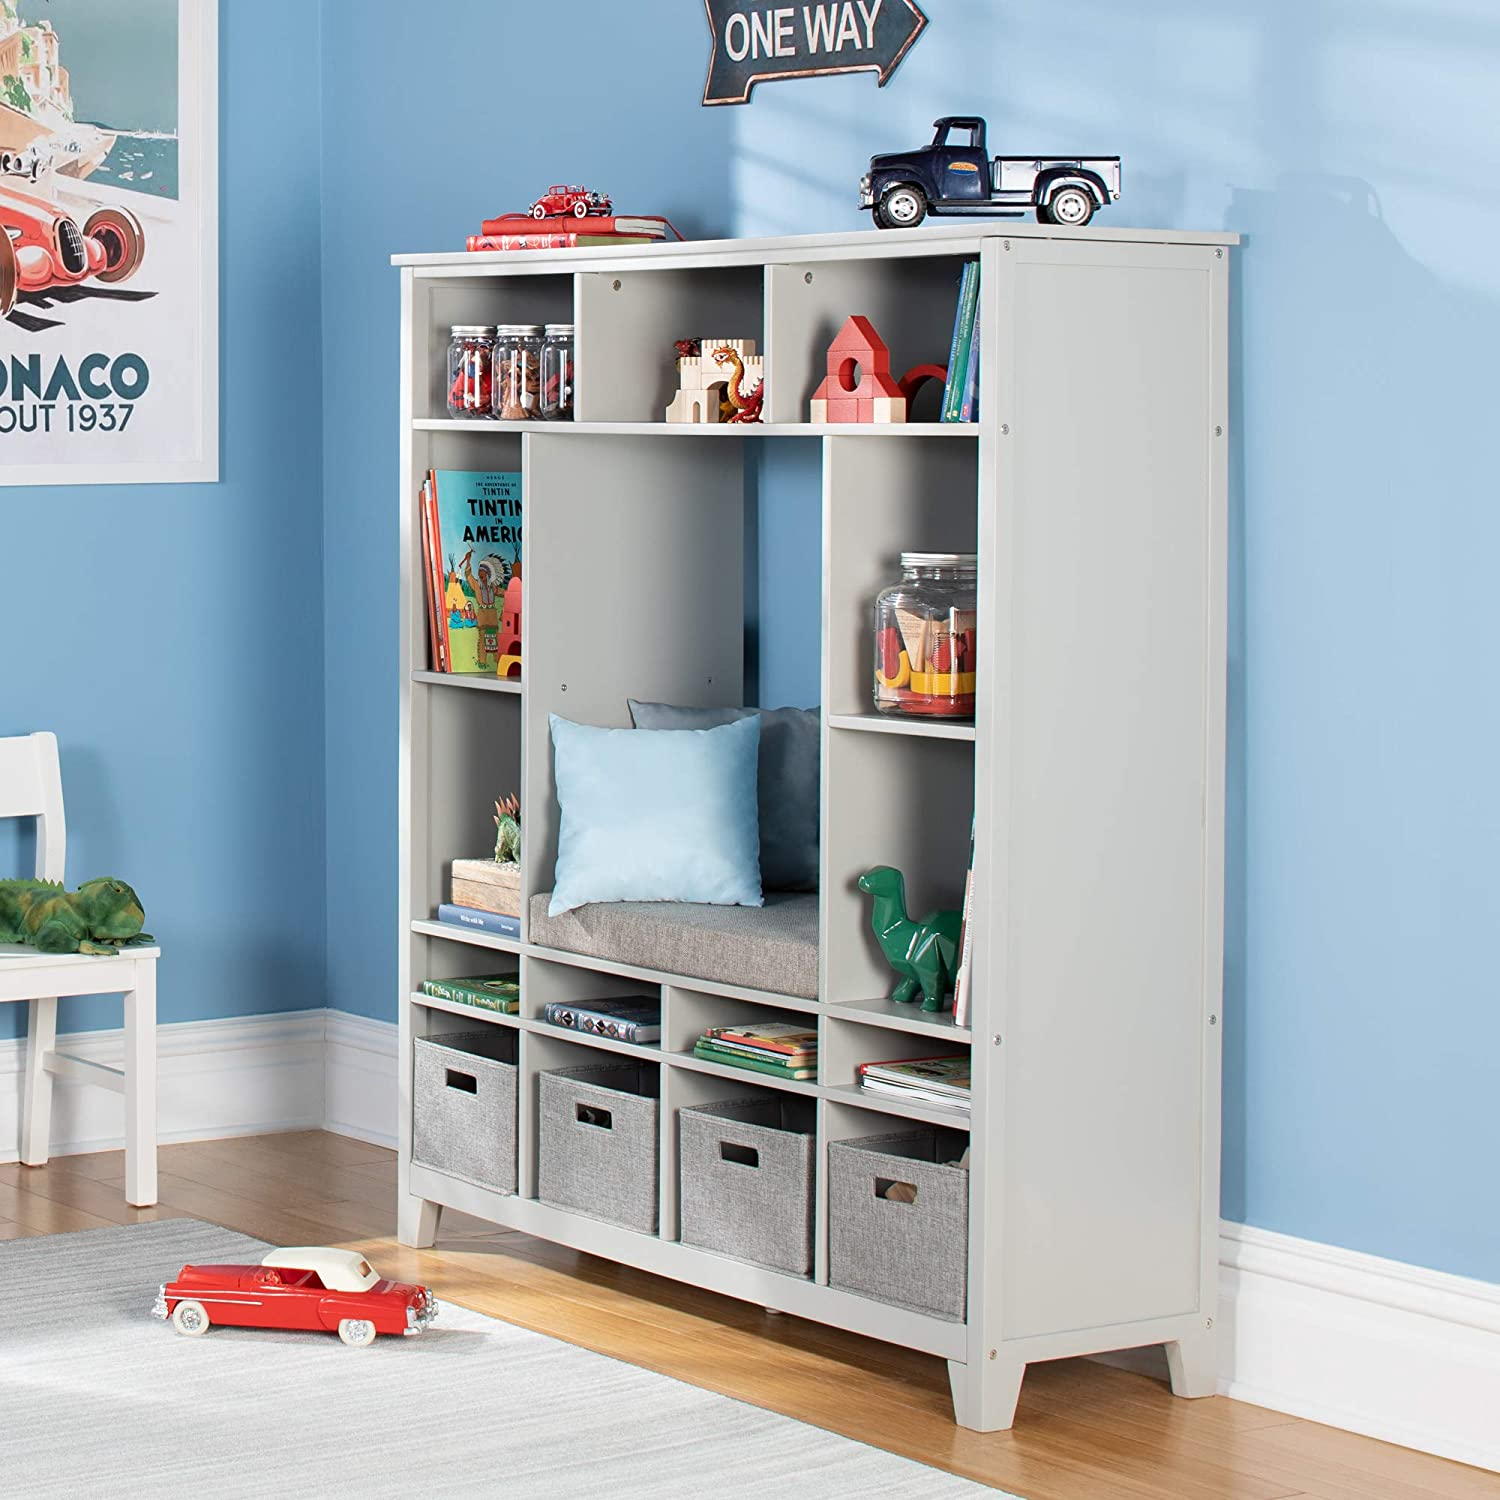 Martha Stewart Living and Learning Kids' Storage System (Gray) – Wooden Cubby with Removable Seat Cushion and Storage Bins; Reading Nook Bookcase and Bedroom Organizer